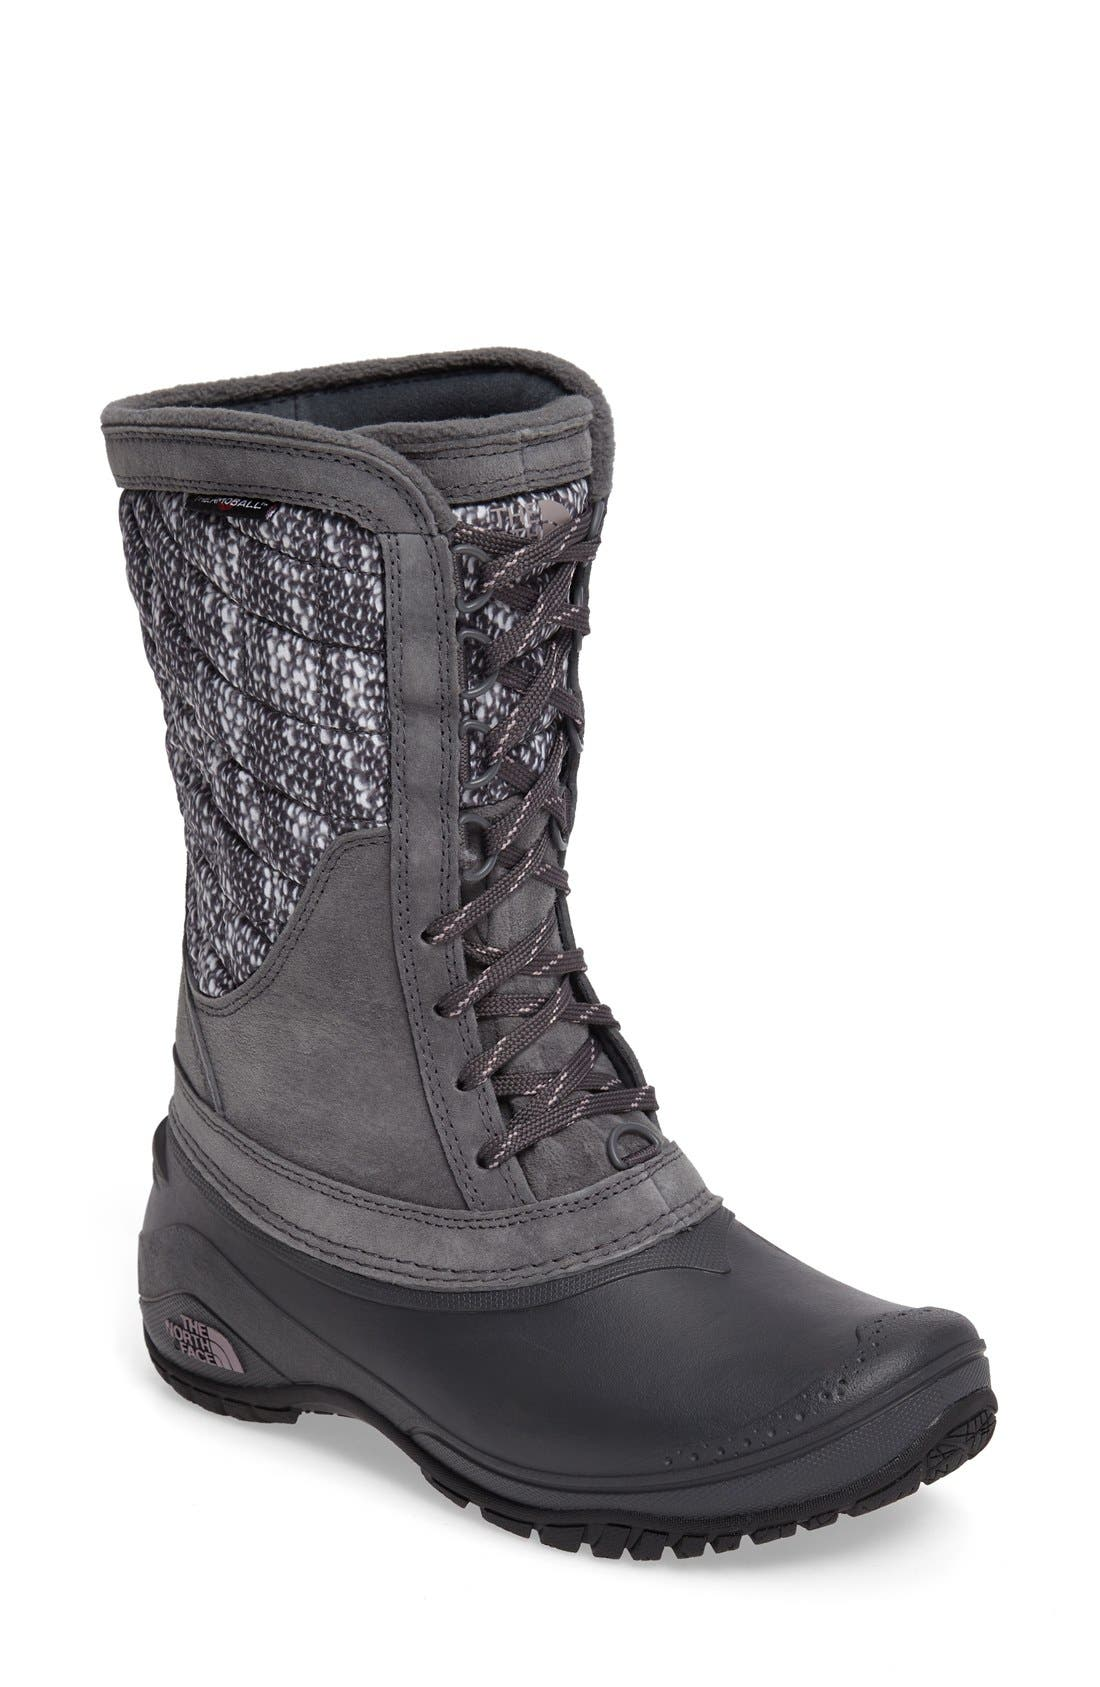 THE NORTH FACE ThermoBall™ Utility Waterproof Boot